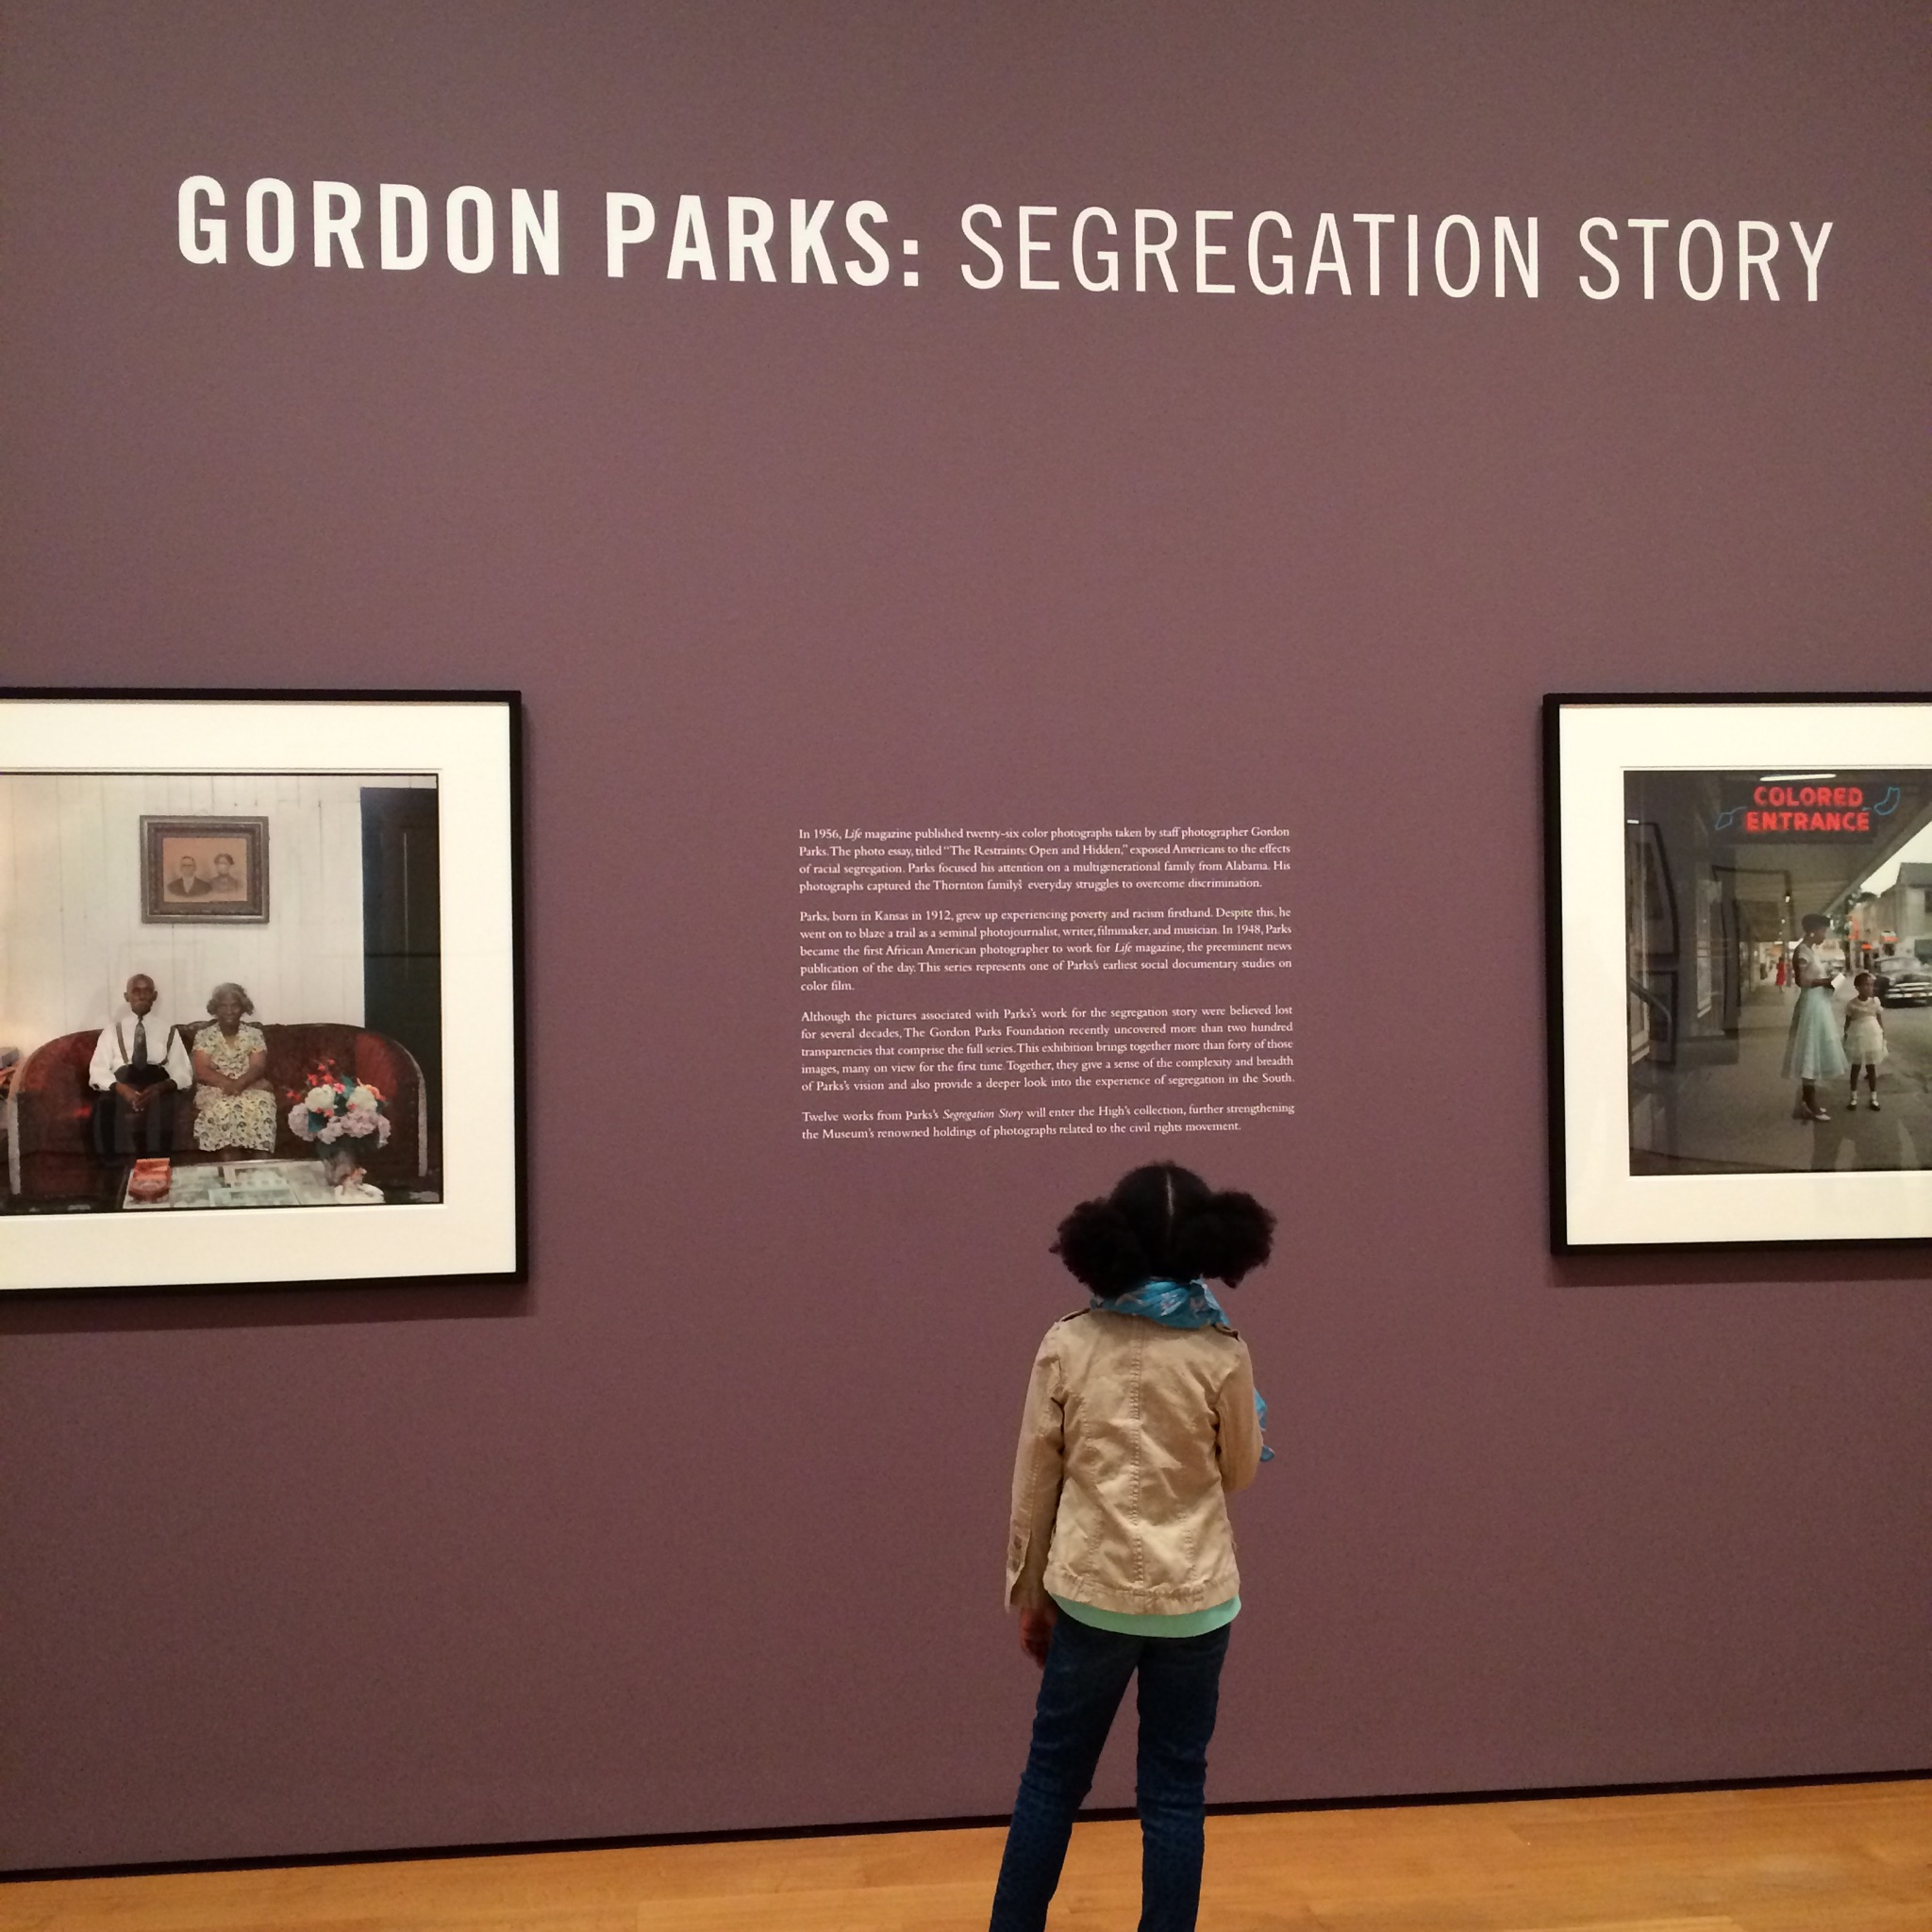 gordon parks segregation story shana was here advertisements